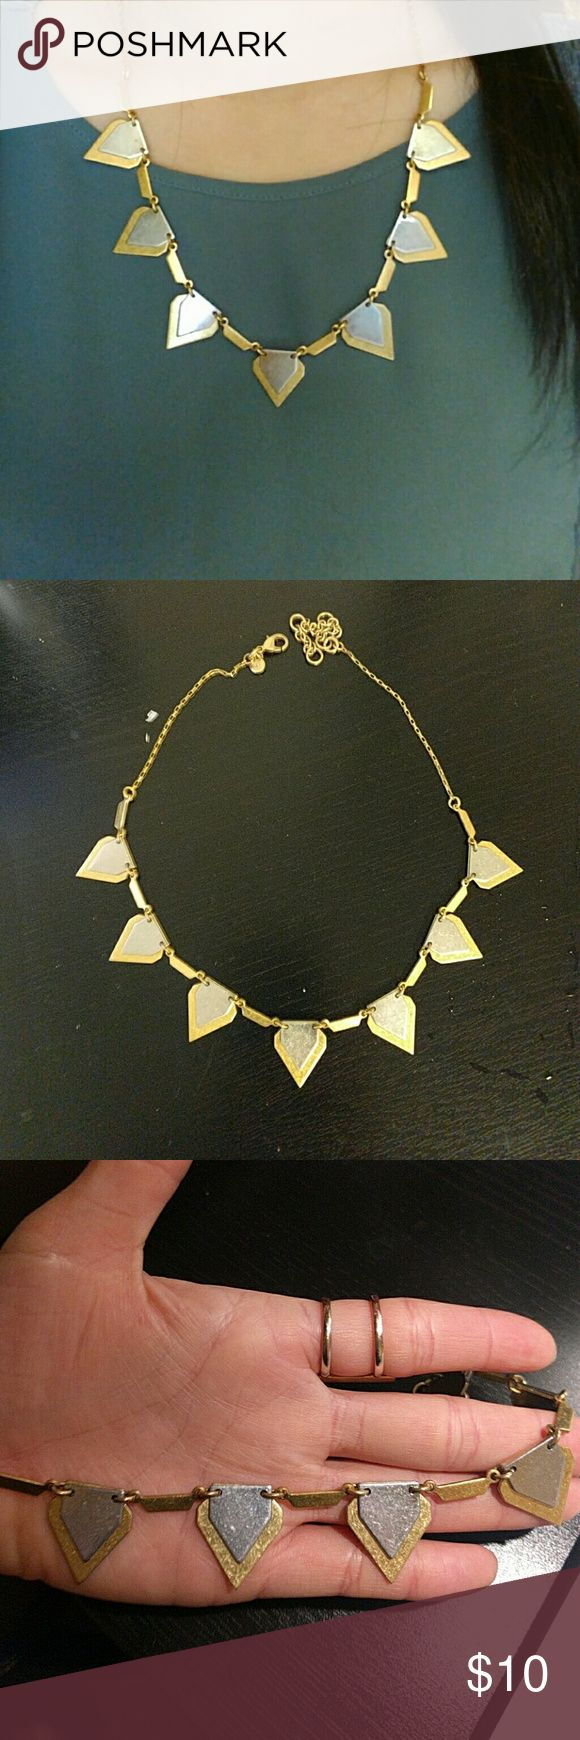 J. Crew Statement Necklace Gold and silver statement necklace from J. Crew. Clasp closure. Worn before but in good condition. J. Crew Jewelry Necklaces